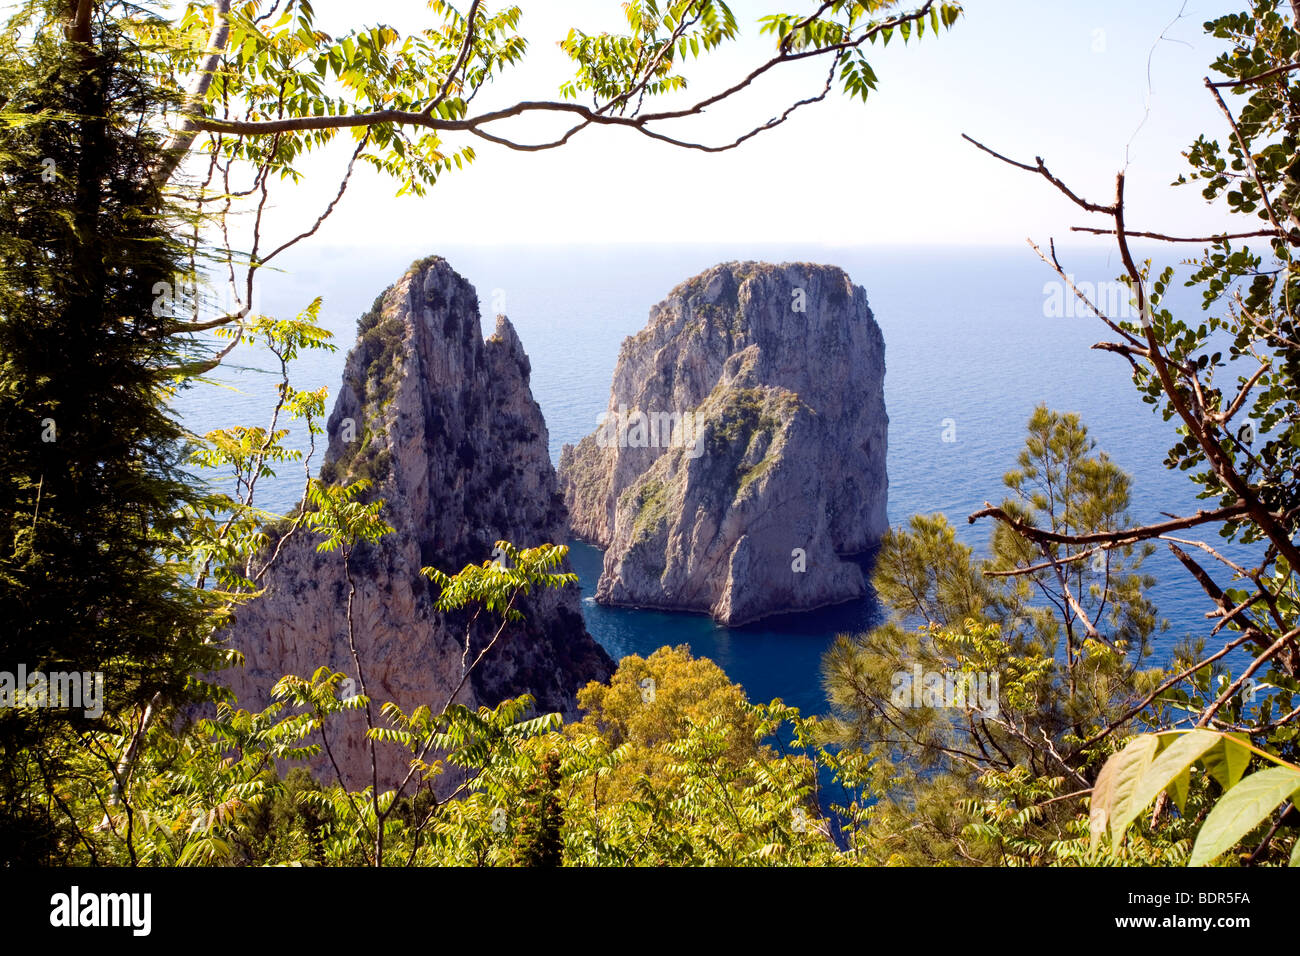 The famous Faraglioni twin Rocks surrounded by water and taken from a cliff above, A landmark on the Isle of Capri, - Stock Image